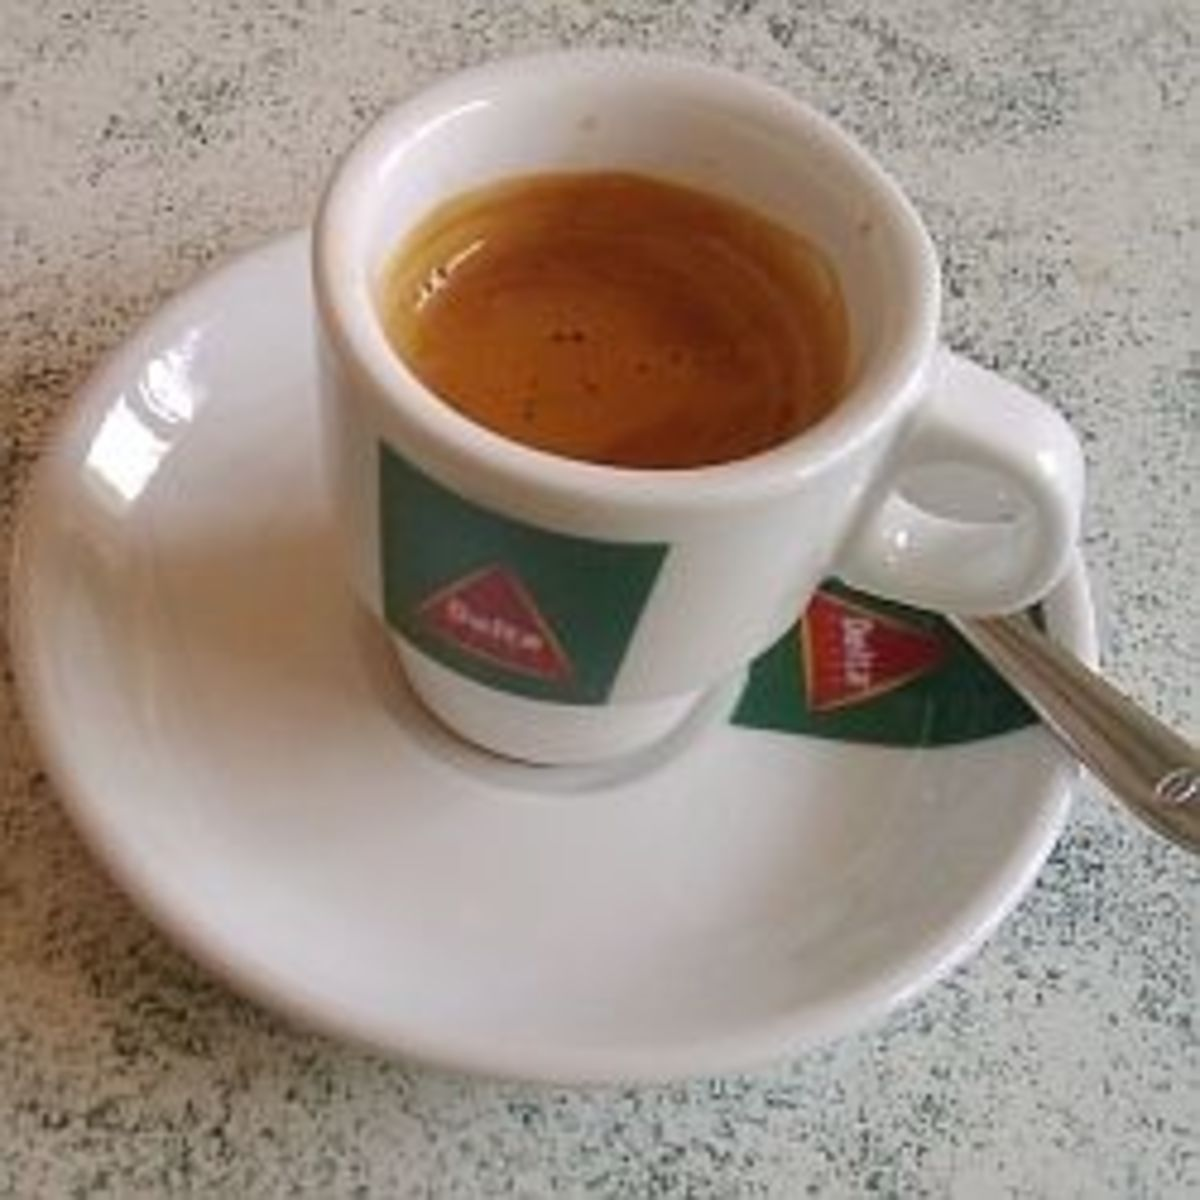 Espresso versus Turkish coffee, versus Drip coffee